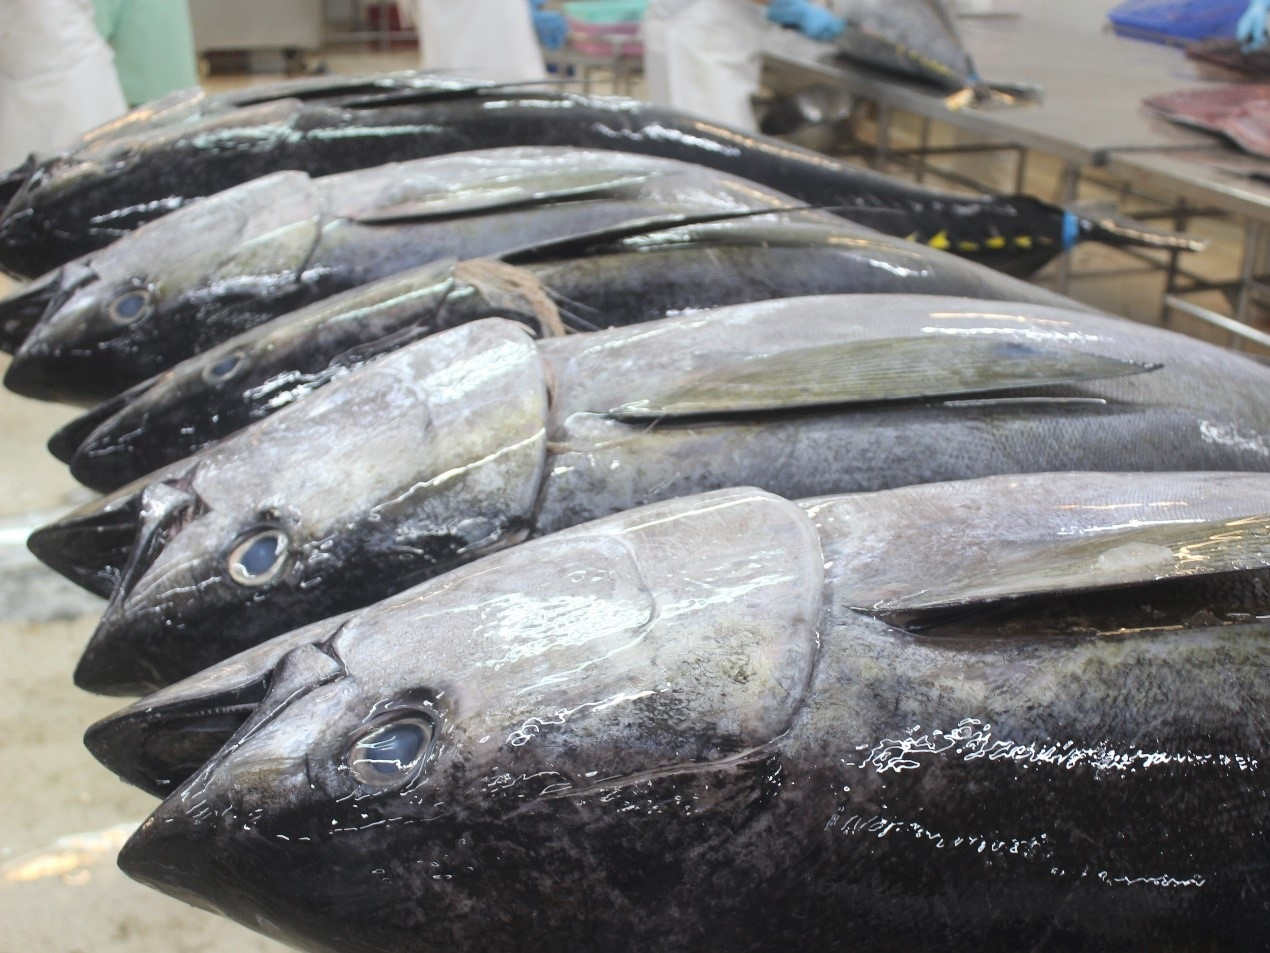 Yellowfin tuna ready for processing